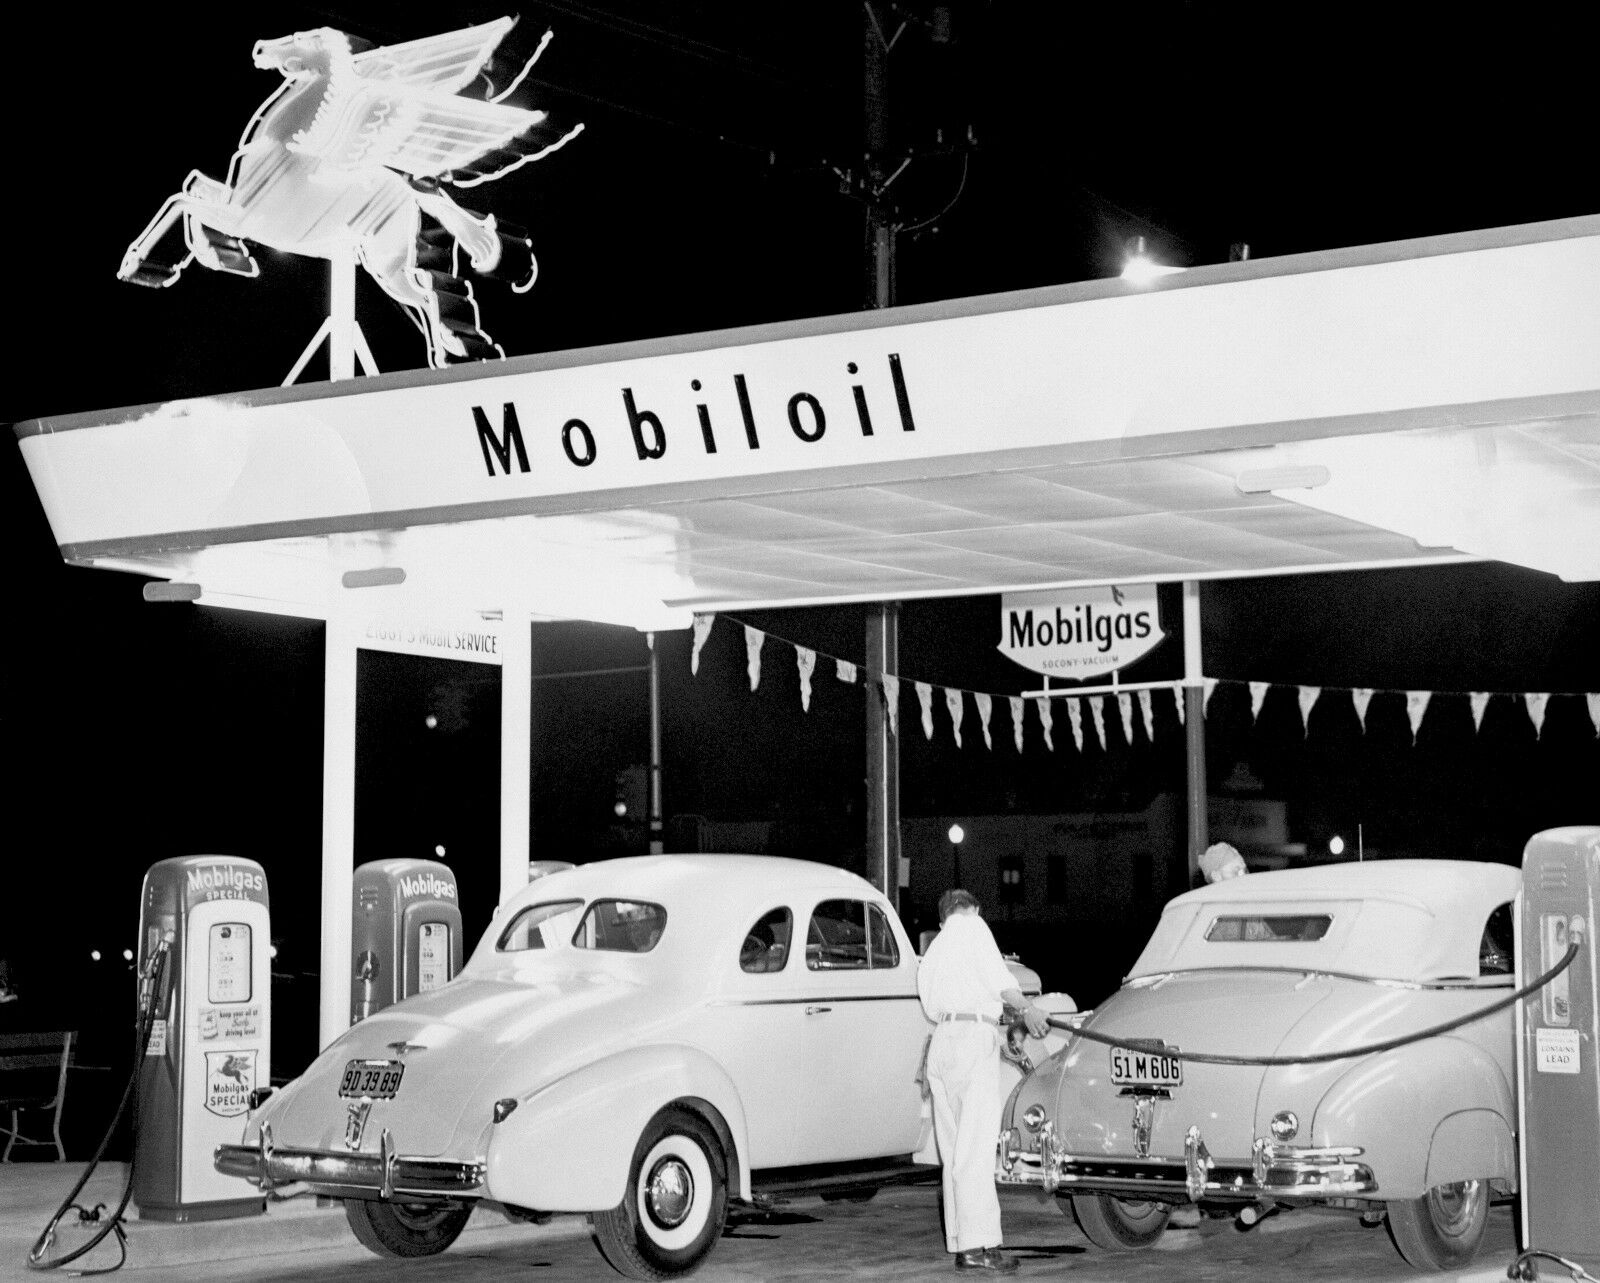 1940s-Mobil-Gas-station-at-night-Cars-getting.jpg